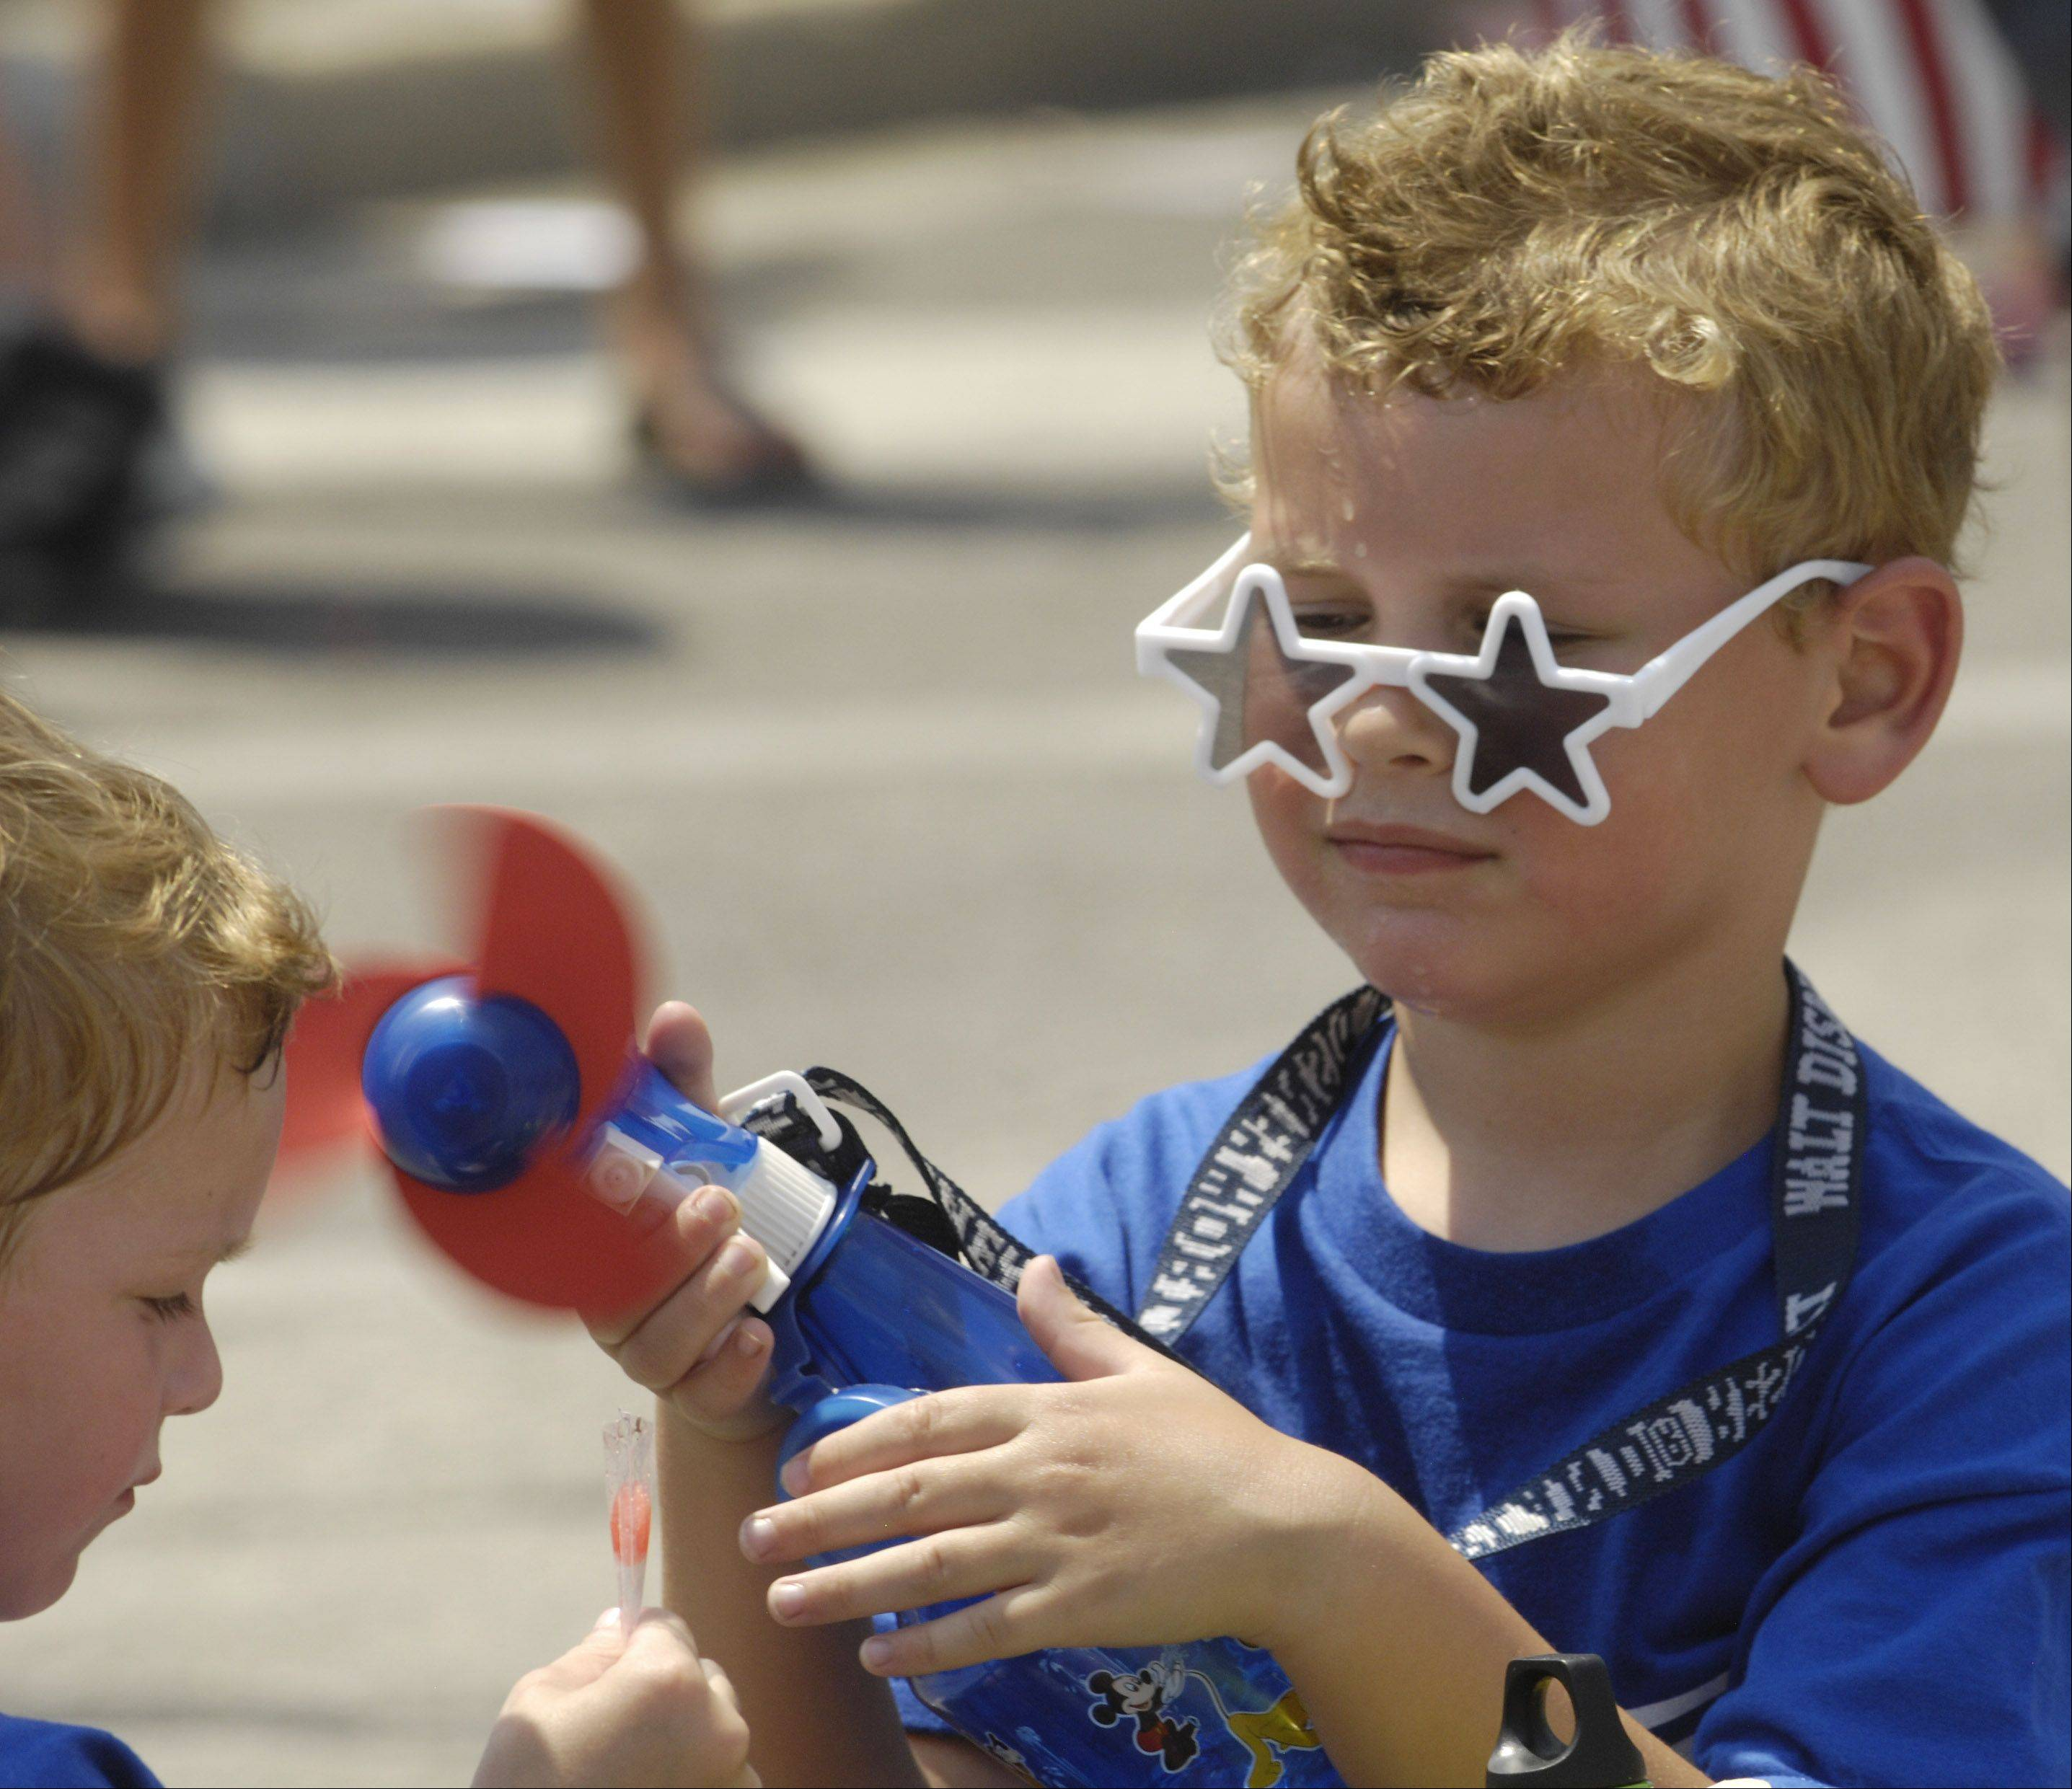 Jack Fitzgerald, 5, of Mount Prospect aims a fan at his cousin, Tyler Fitzgerald, 3, of Schaumburg, as he helps him cool off during the Mount Prospect Fourth of July parade.